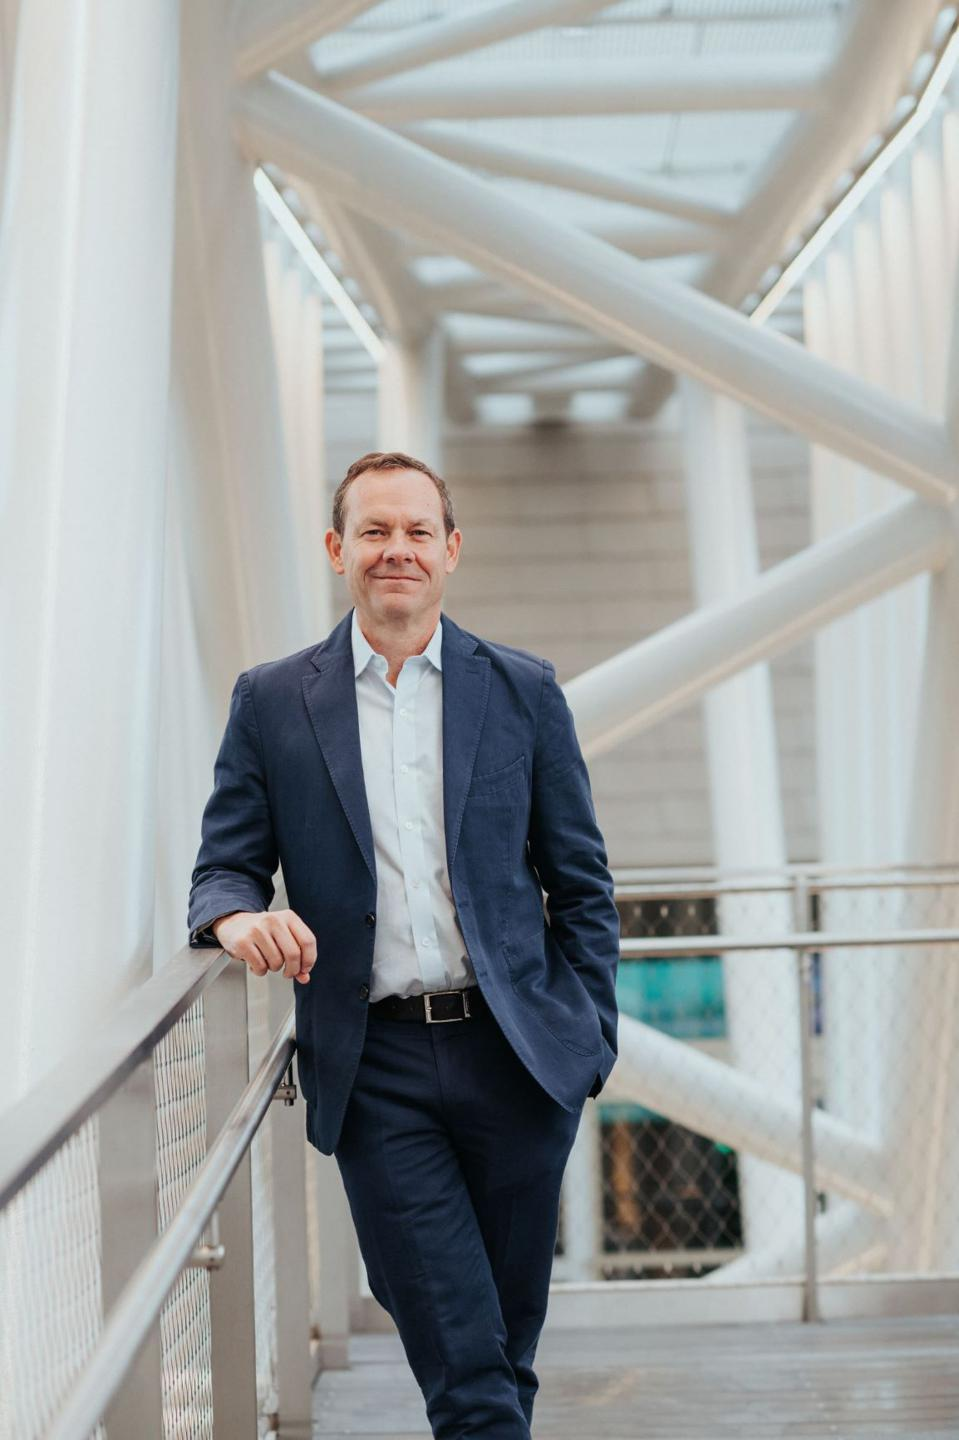 Envestnet Co-Founder and CEO Bill Crager